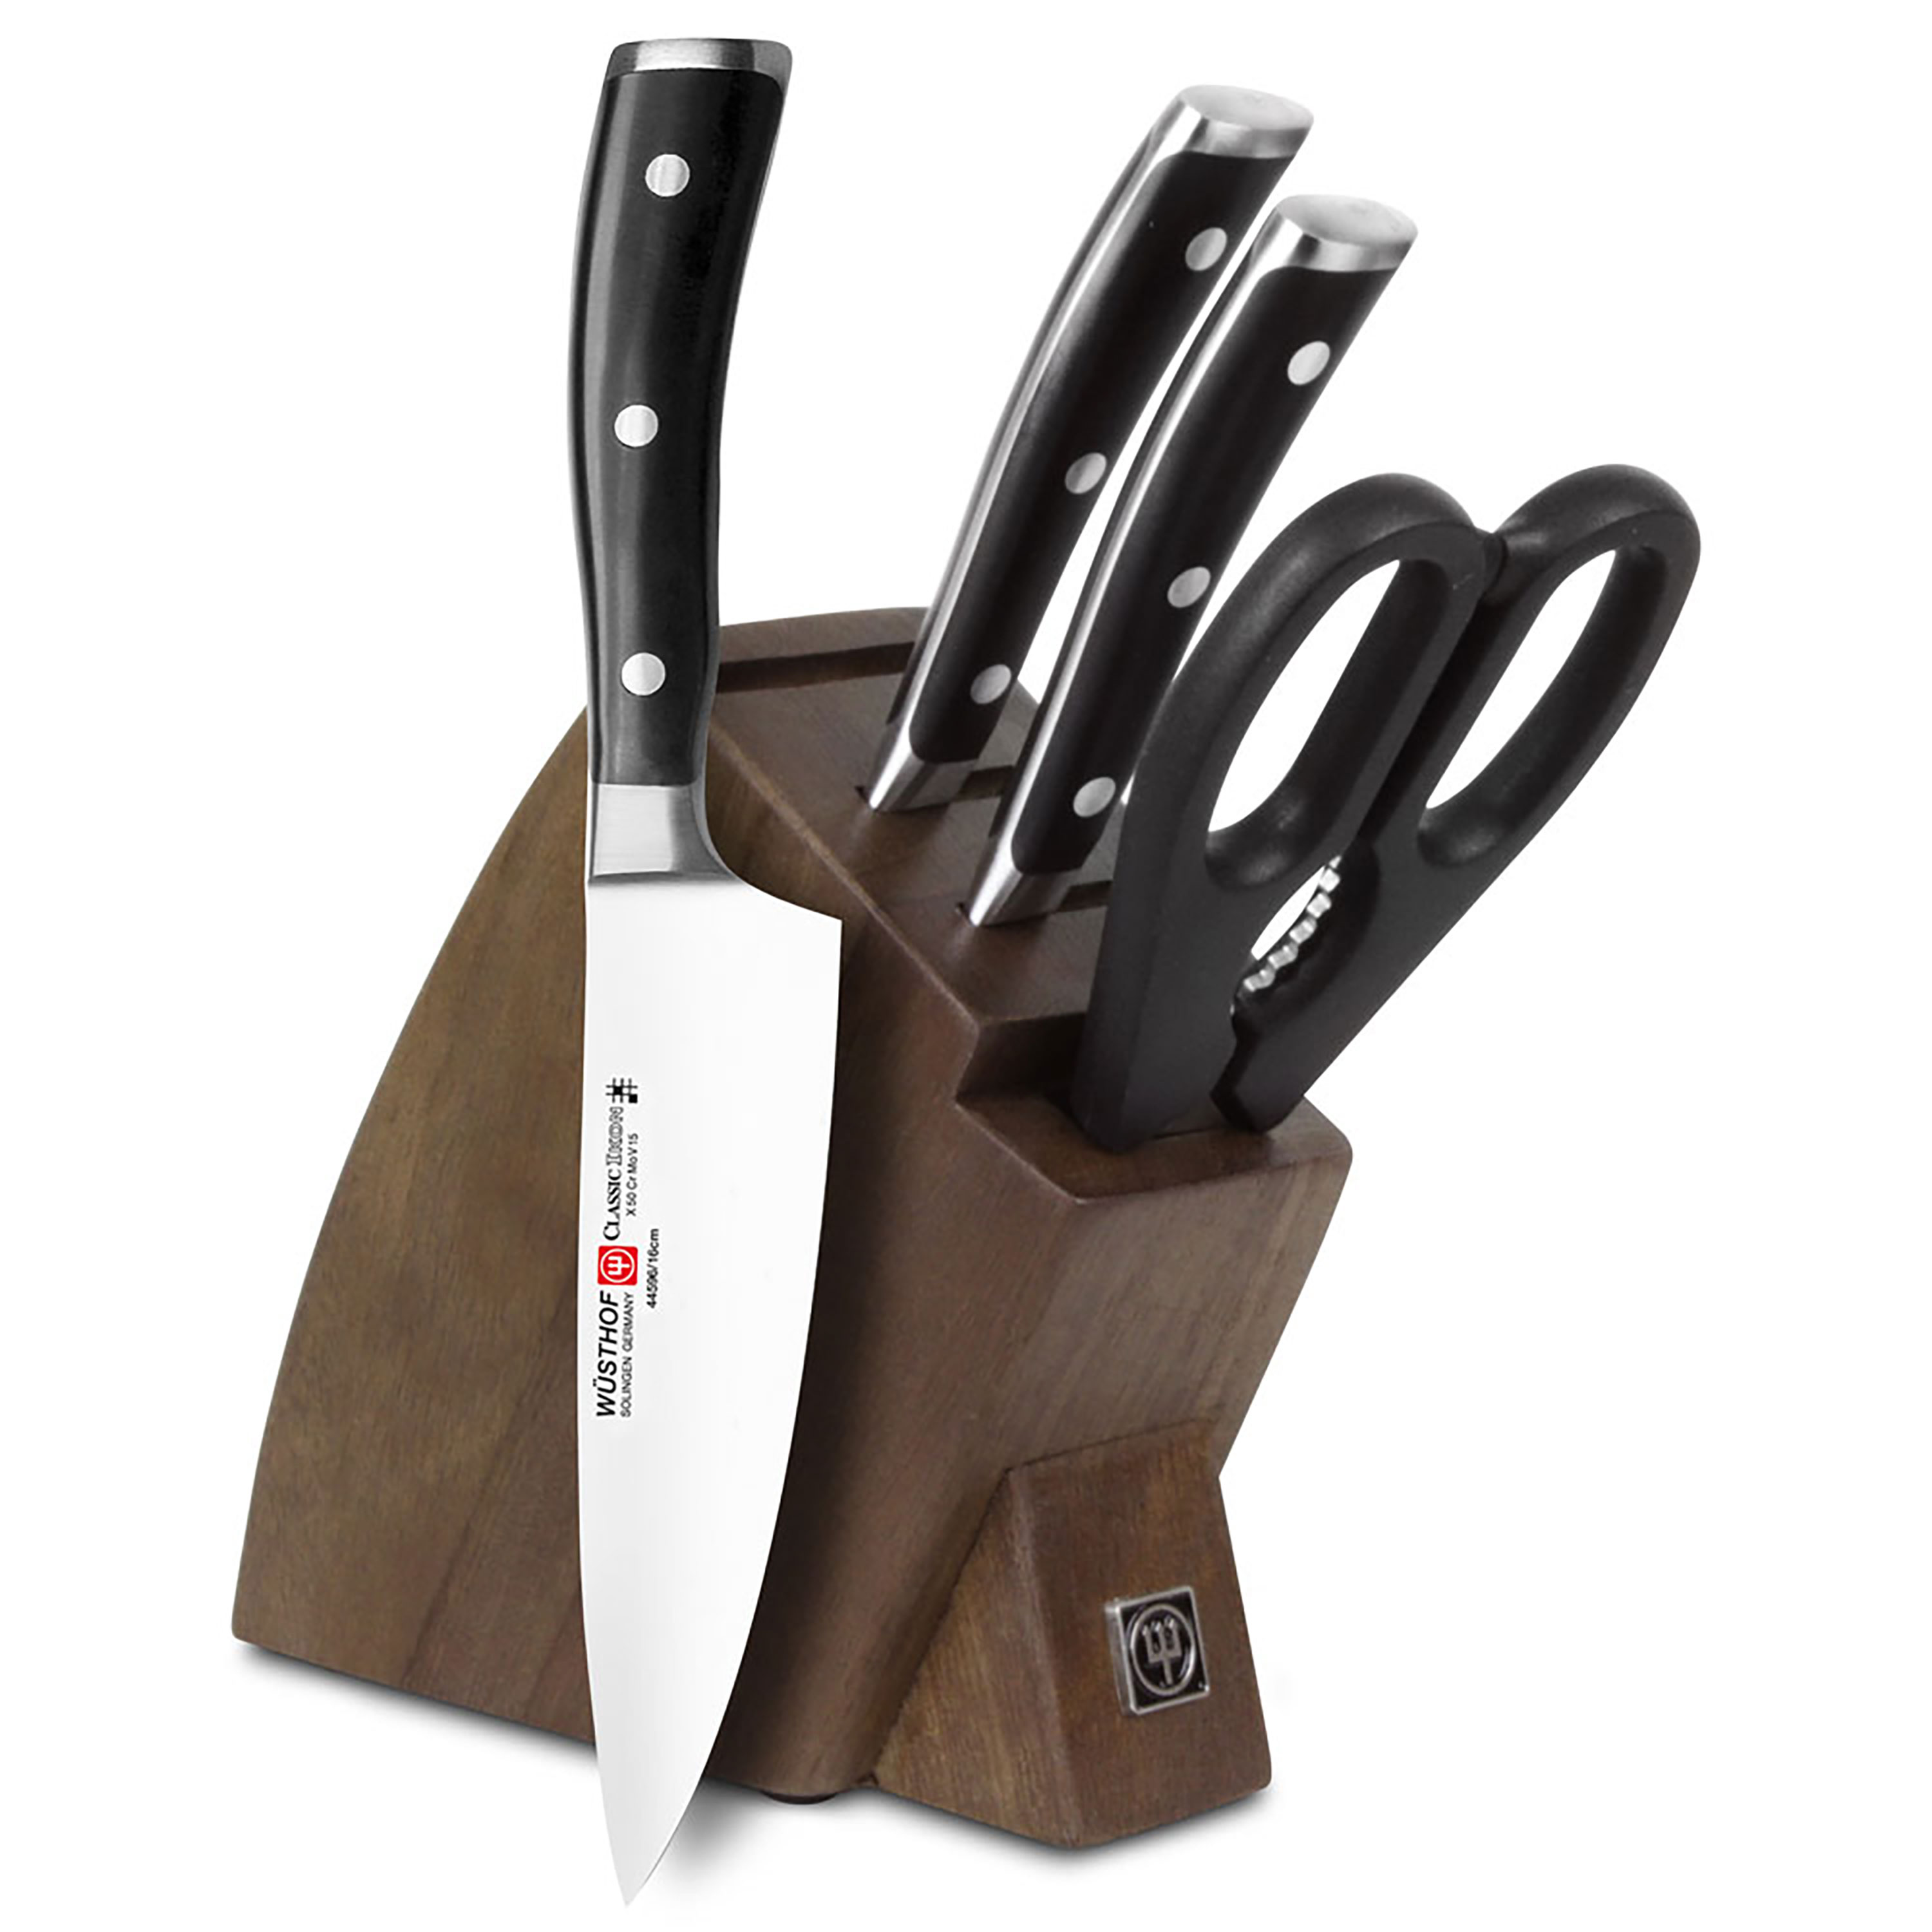 Wusthof Classic Ikon Studio Knife Block Set 5 Piece